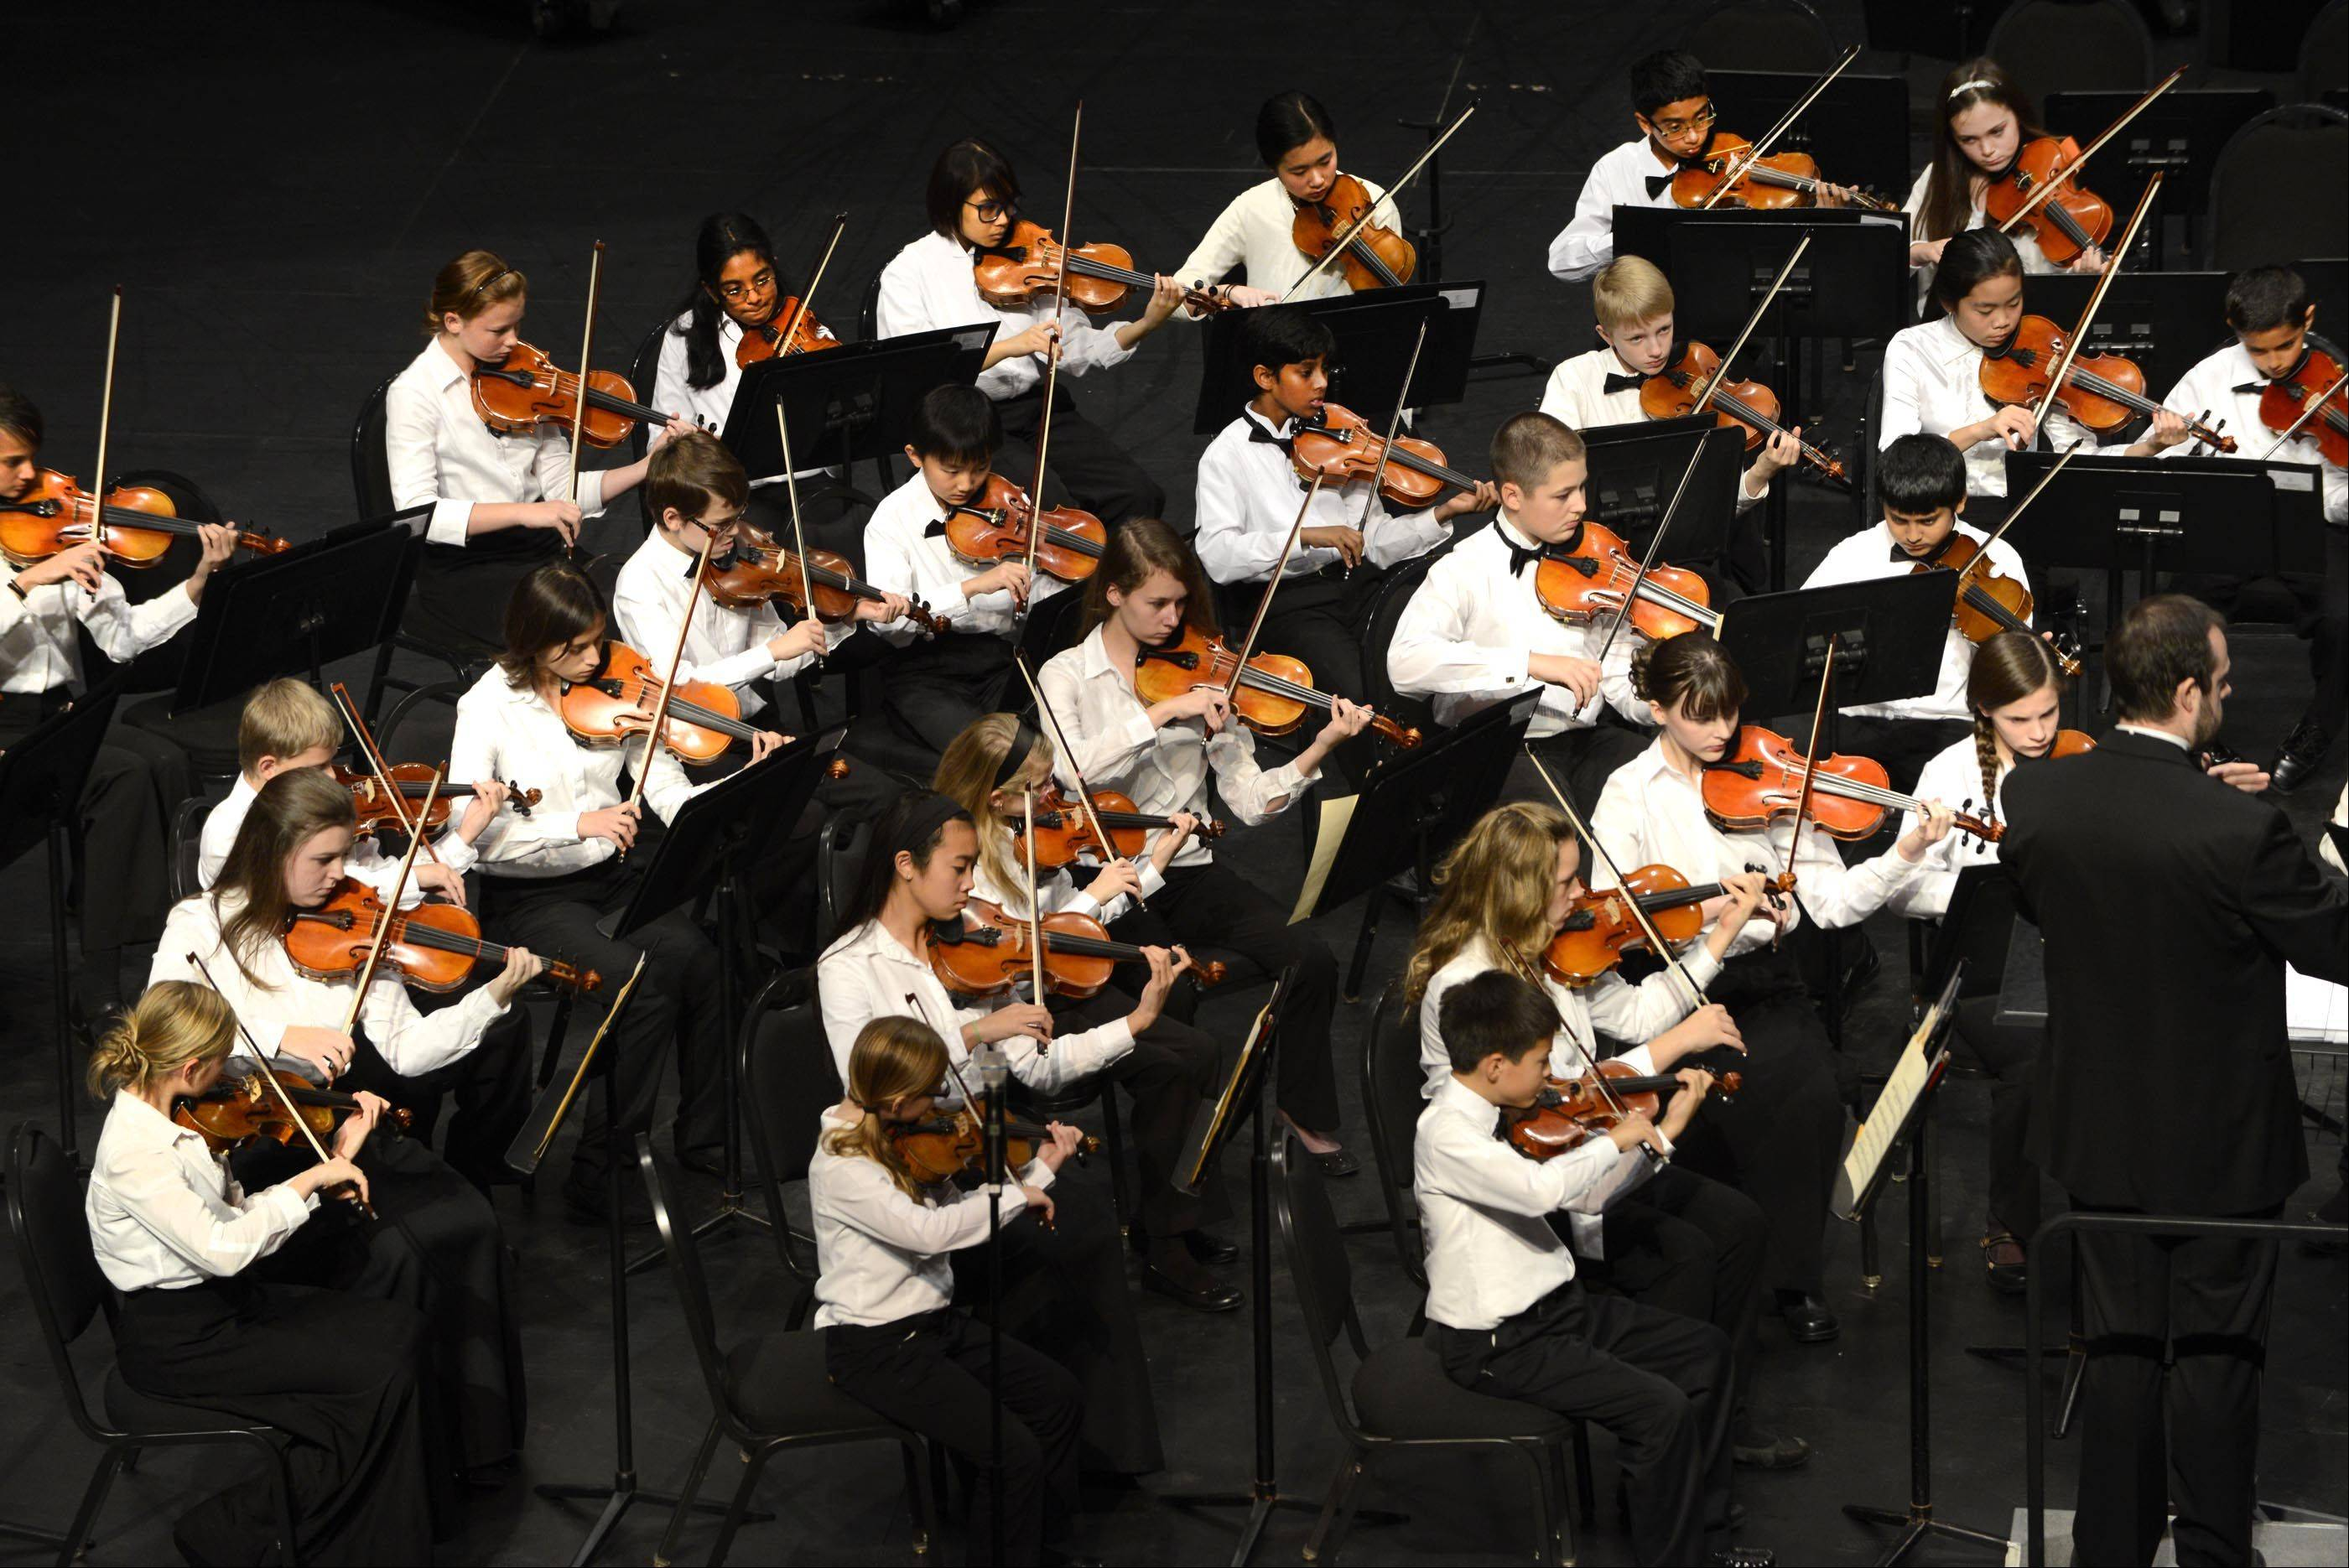 Violins play as the Elgin Youth Symphony Orchestra opens it's 38th concert season Sunday at the Blizzard Theater at Elgin Community College.